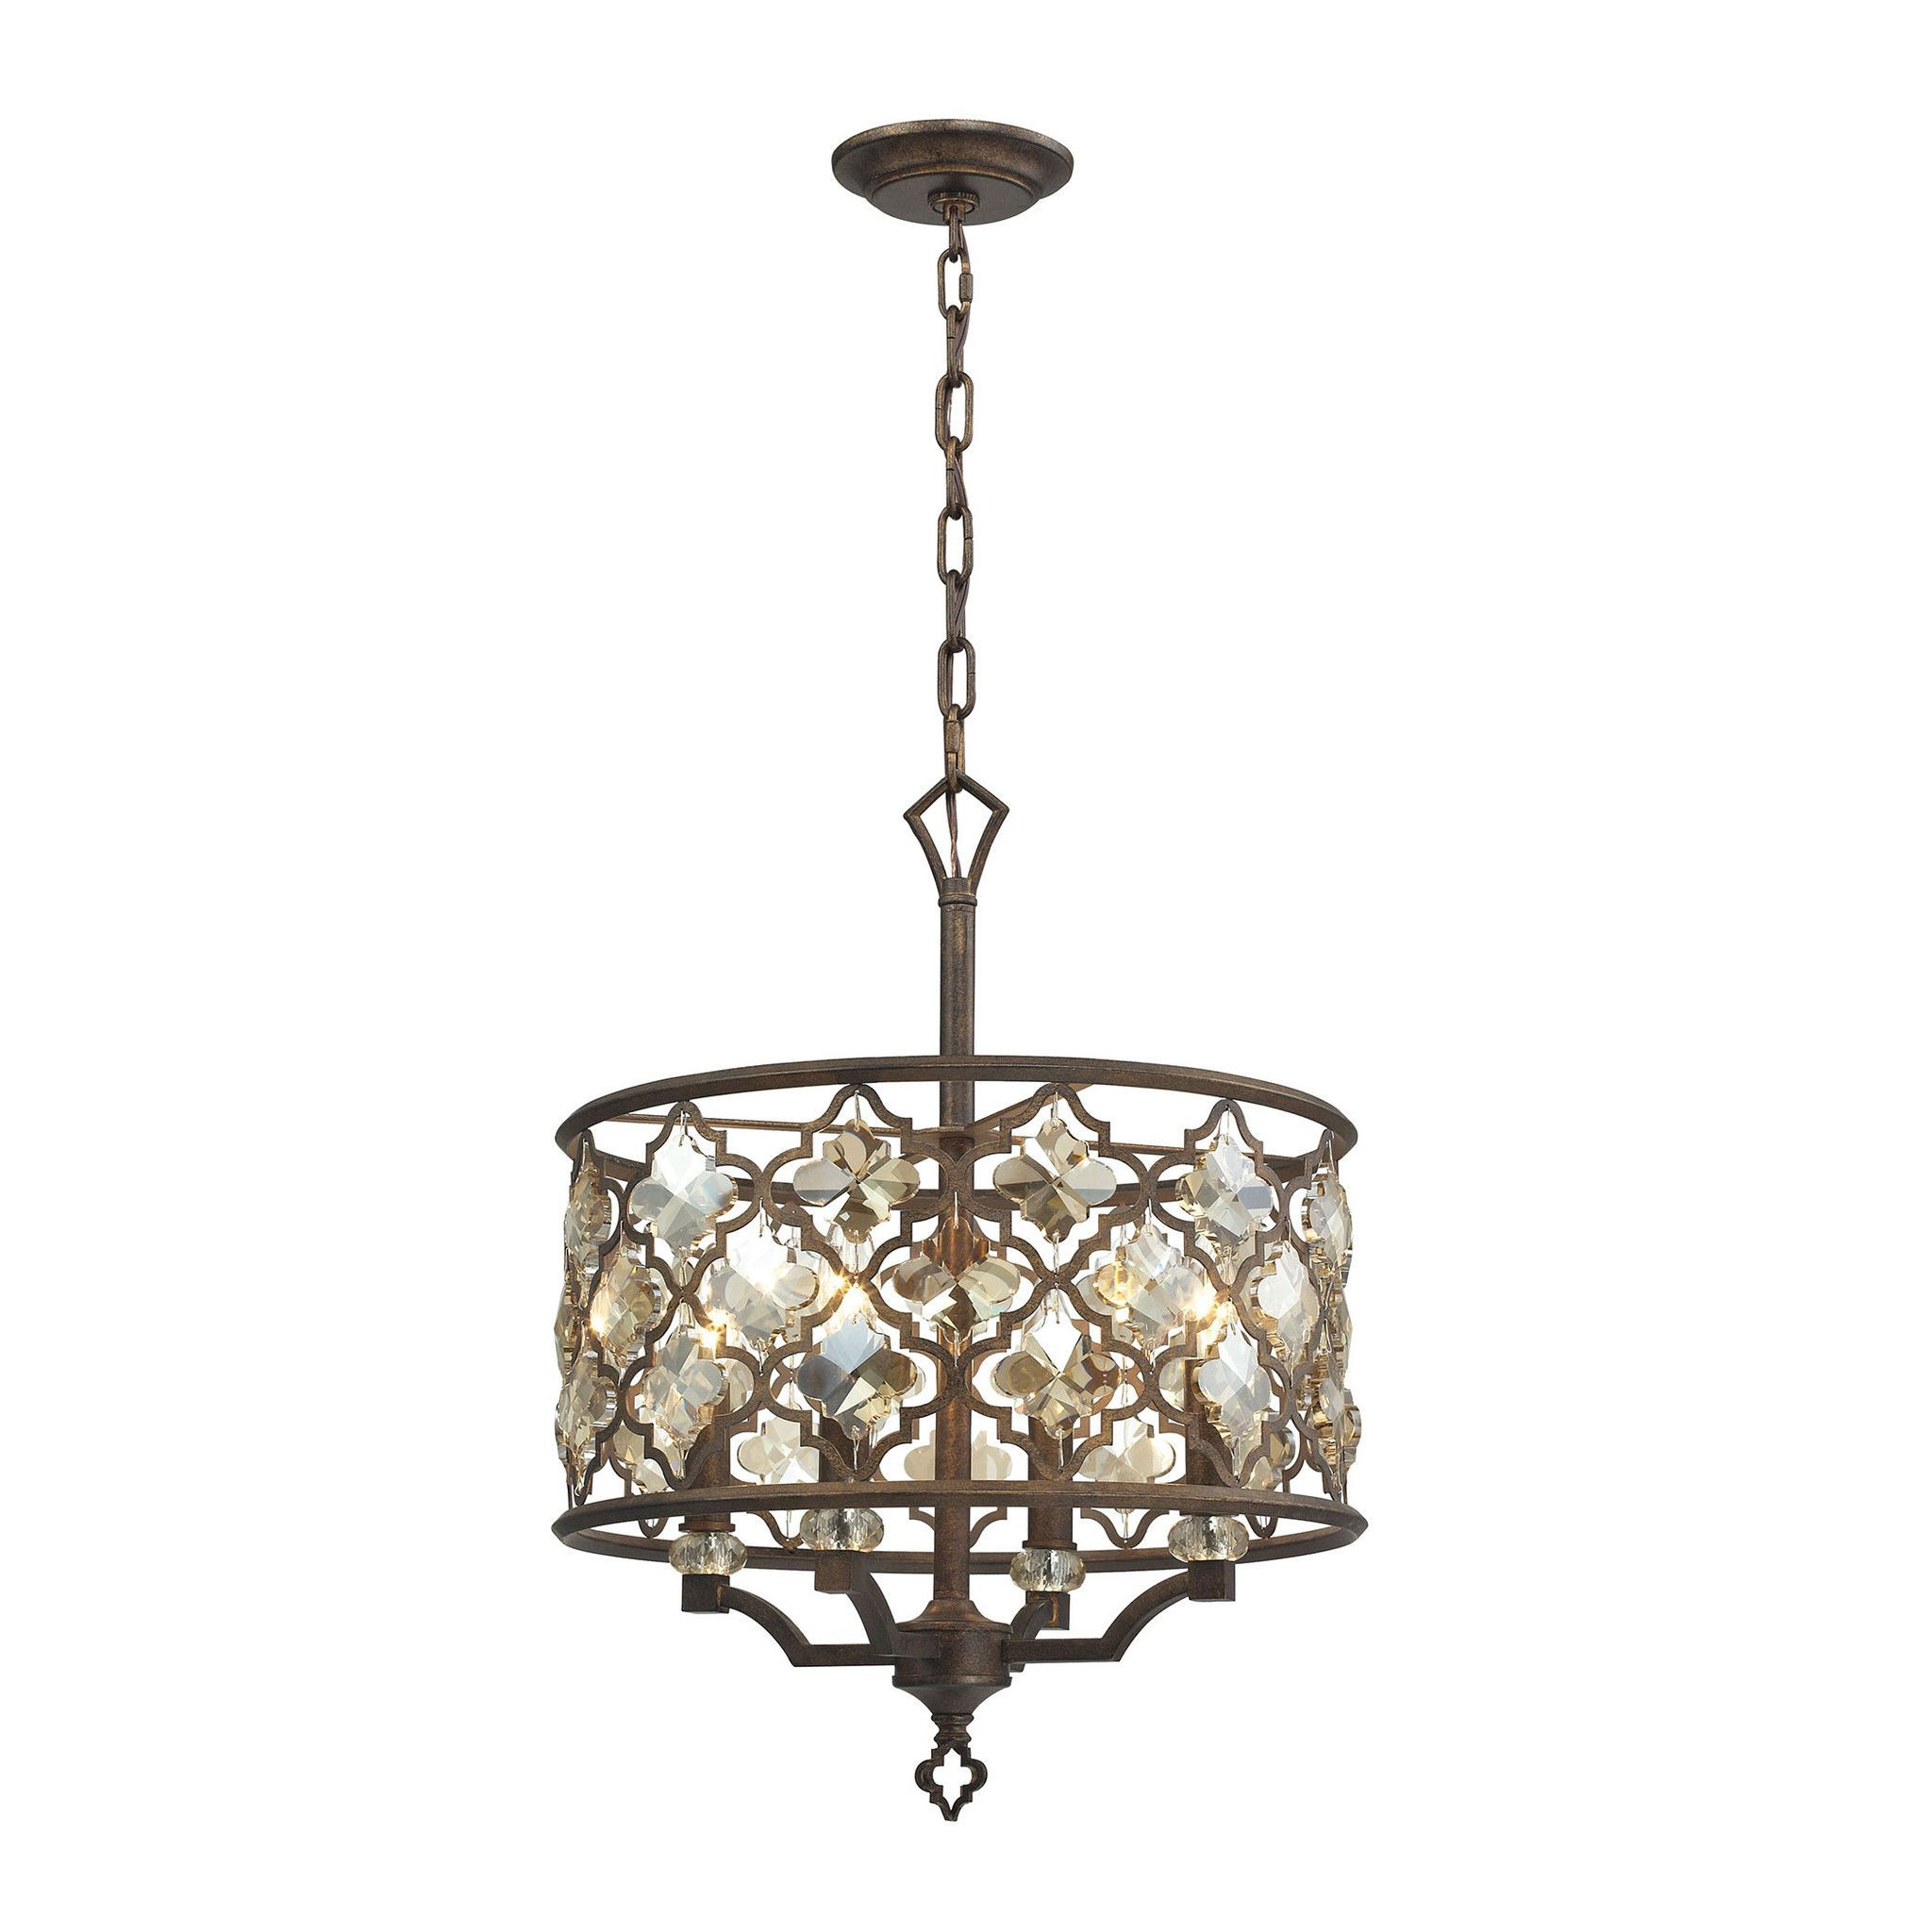 ELK Lighting  Armand Collection Weathered Bronze Finish